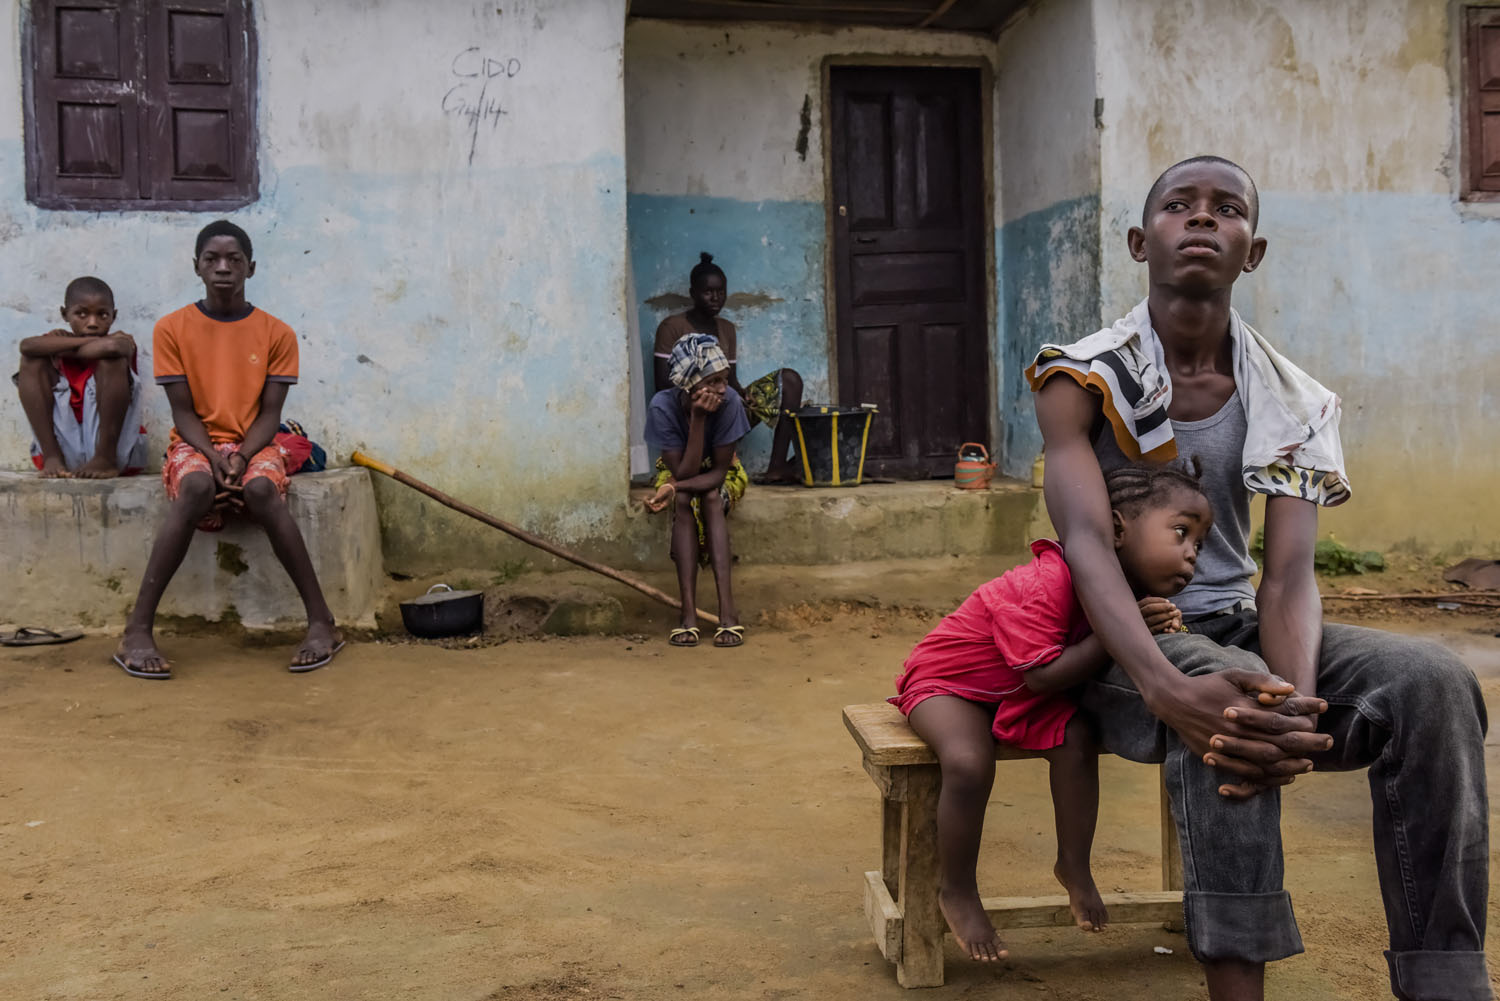 The New York Times: As Ebola Rages in Sierra Leone, a Lonely DeathFamily of Isatu Sesay, 16, an Ebola victim, grieve as they wait for a burial team to collect Sesay's body, in Kissi Town, Sierra Leone, Nov. 22, 2014.